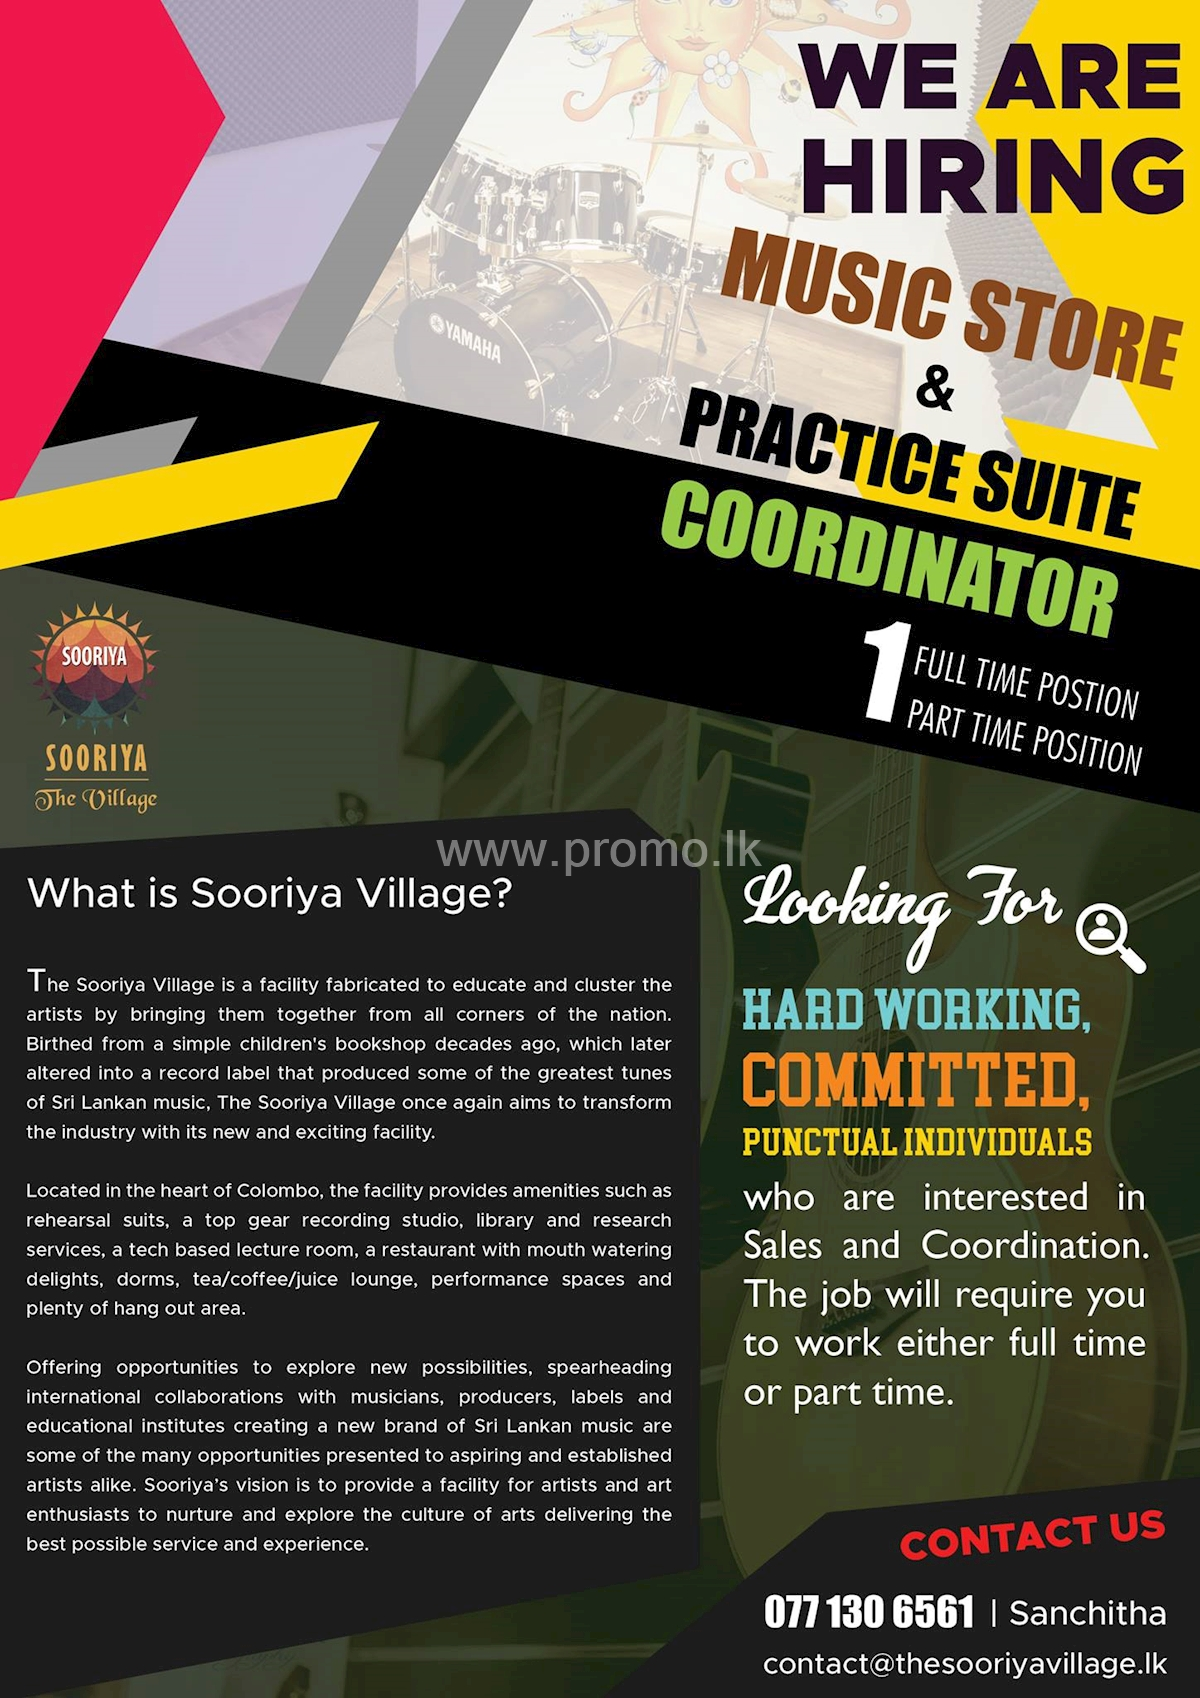 Music Store and Practice Suite Coordinator at The Sooriya Village